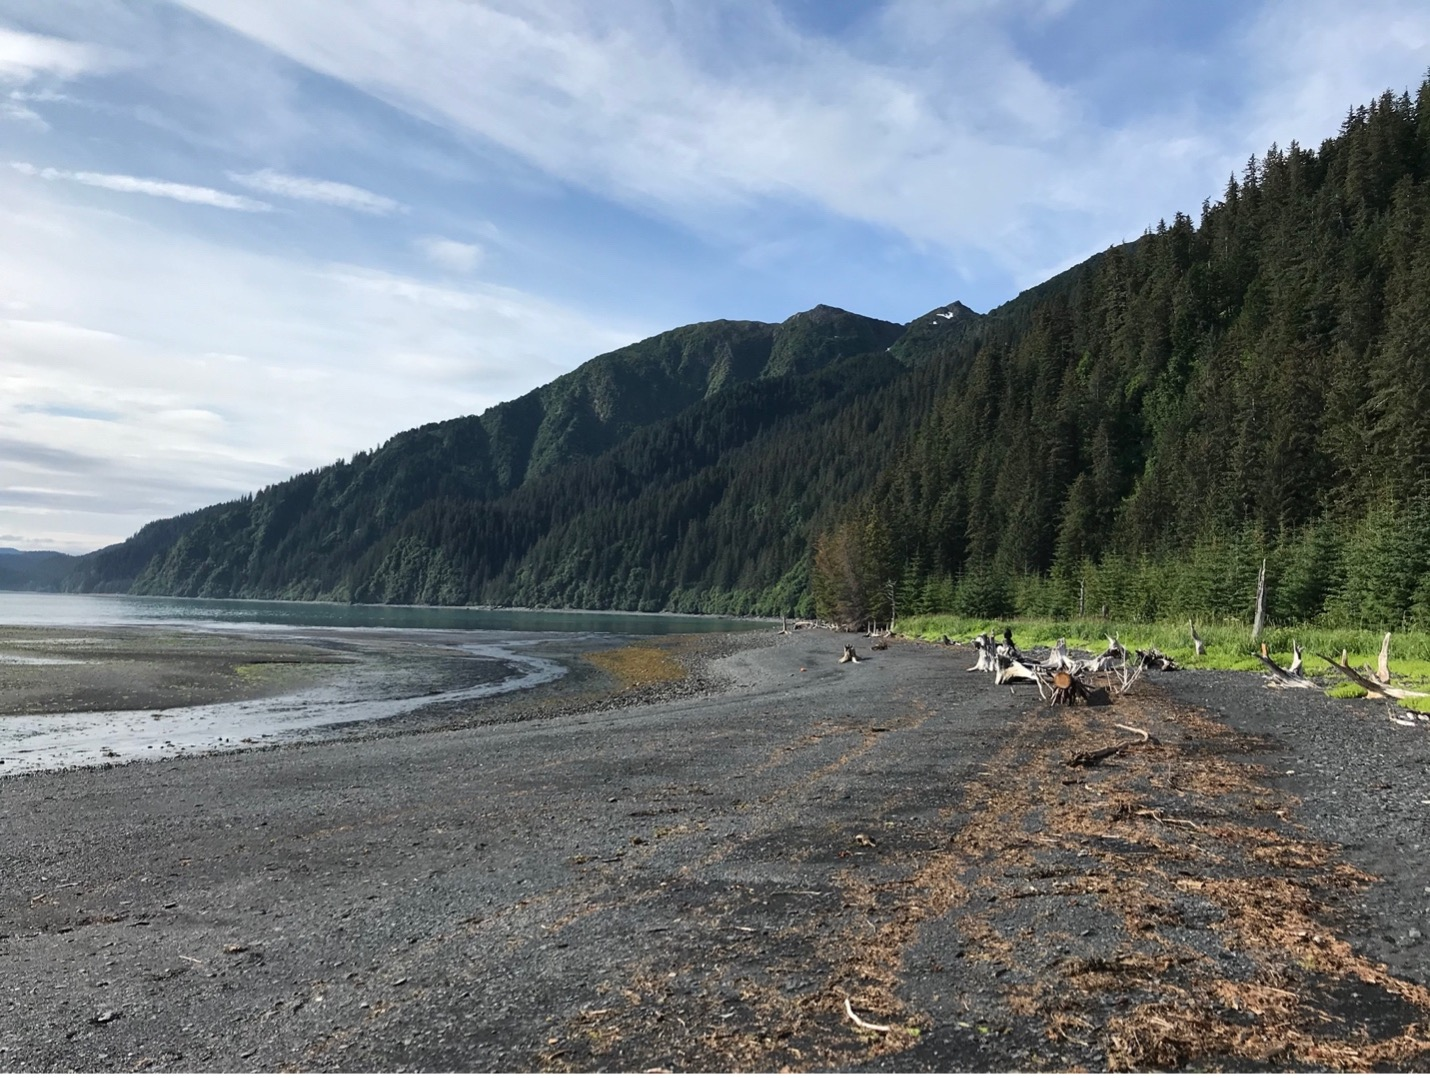 Mountains with evergreen trees bump up against a beach with driftwood